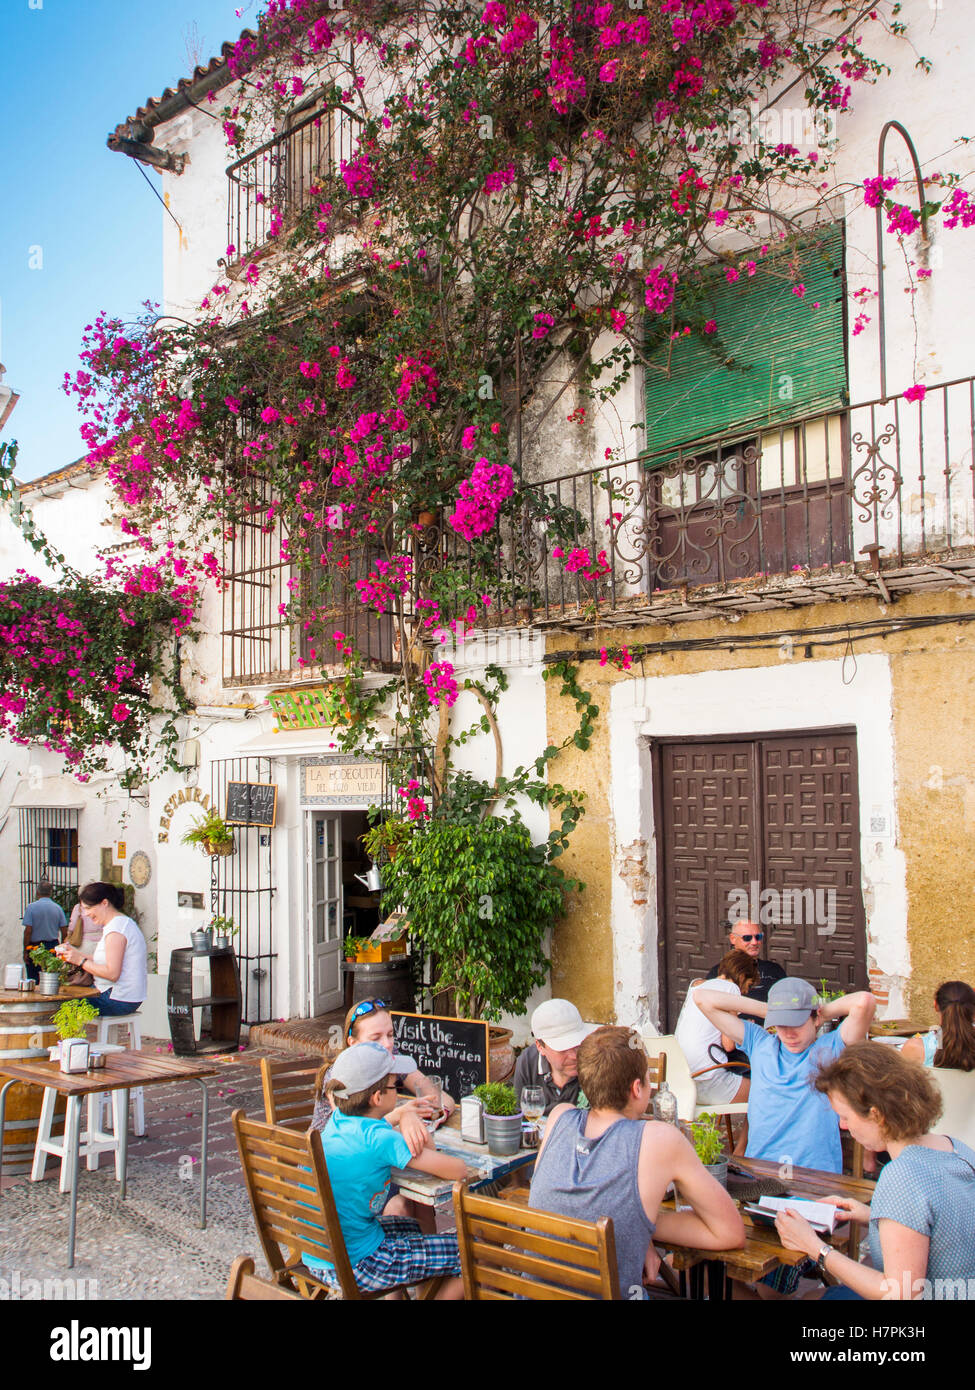 Typical bar restaurant and bougainvillea , Old Town Marbella. Costa del Sol, Málaga province. Andalusia, Spain - Stock Image